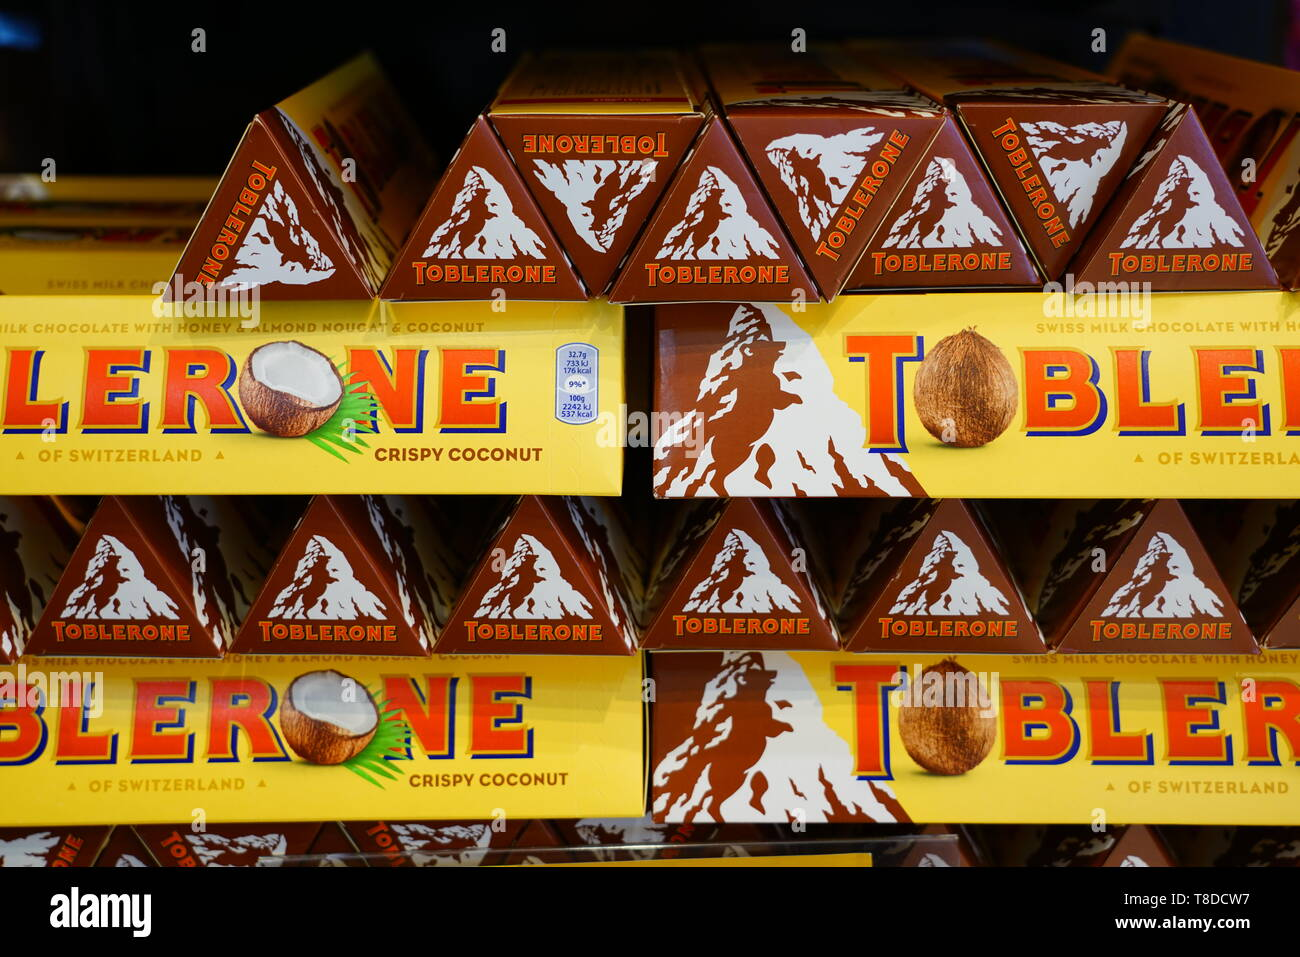 Candy Owned Stock Photos & Candy Owned Stock Images - Alamy